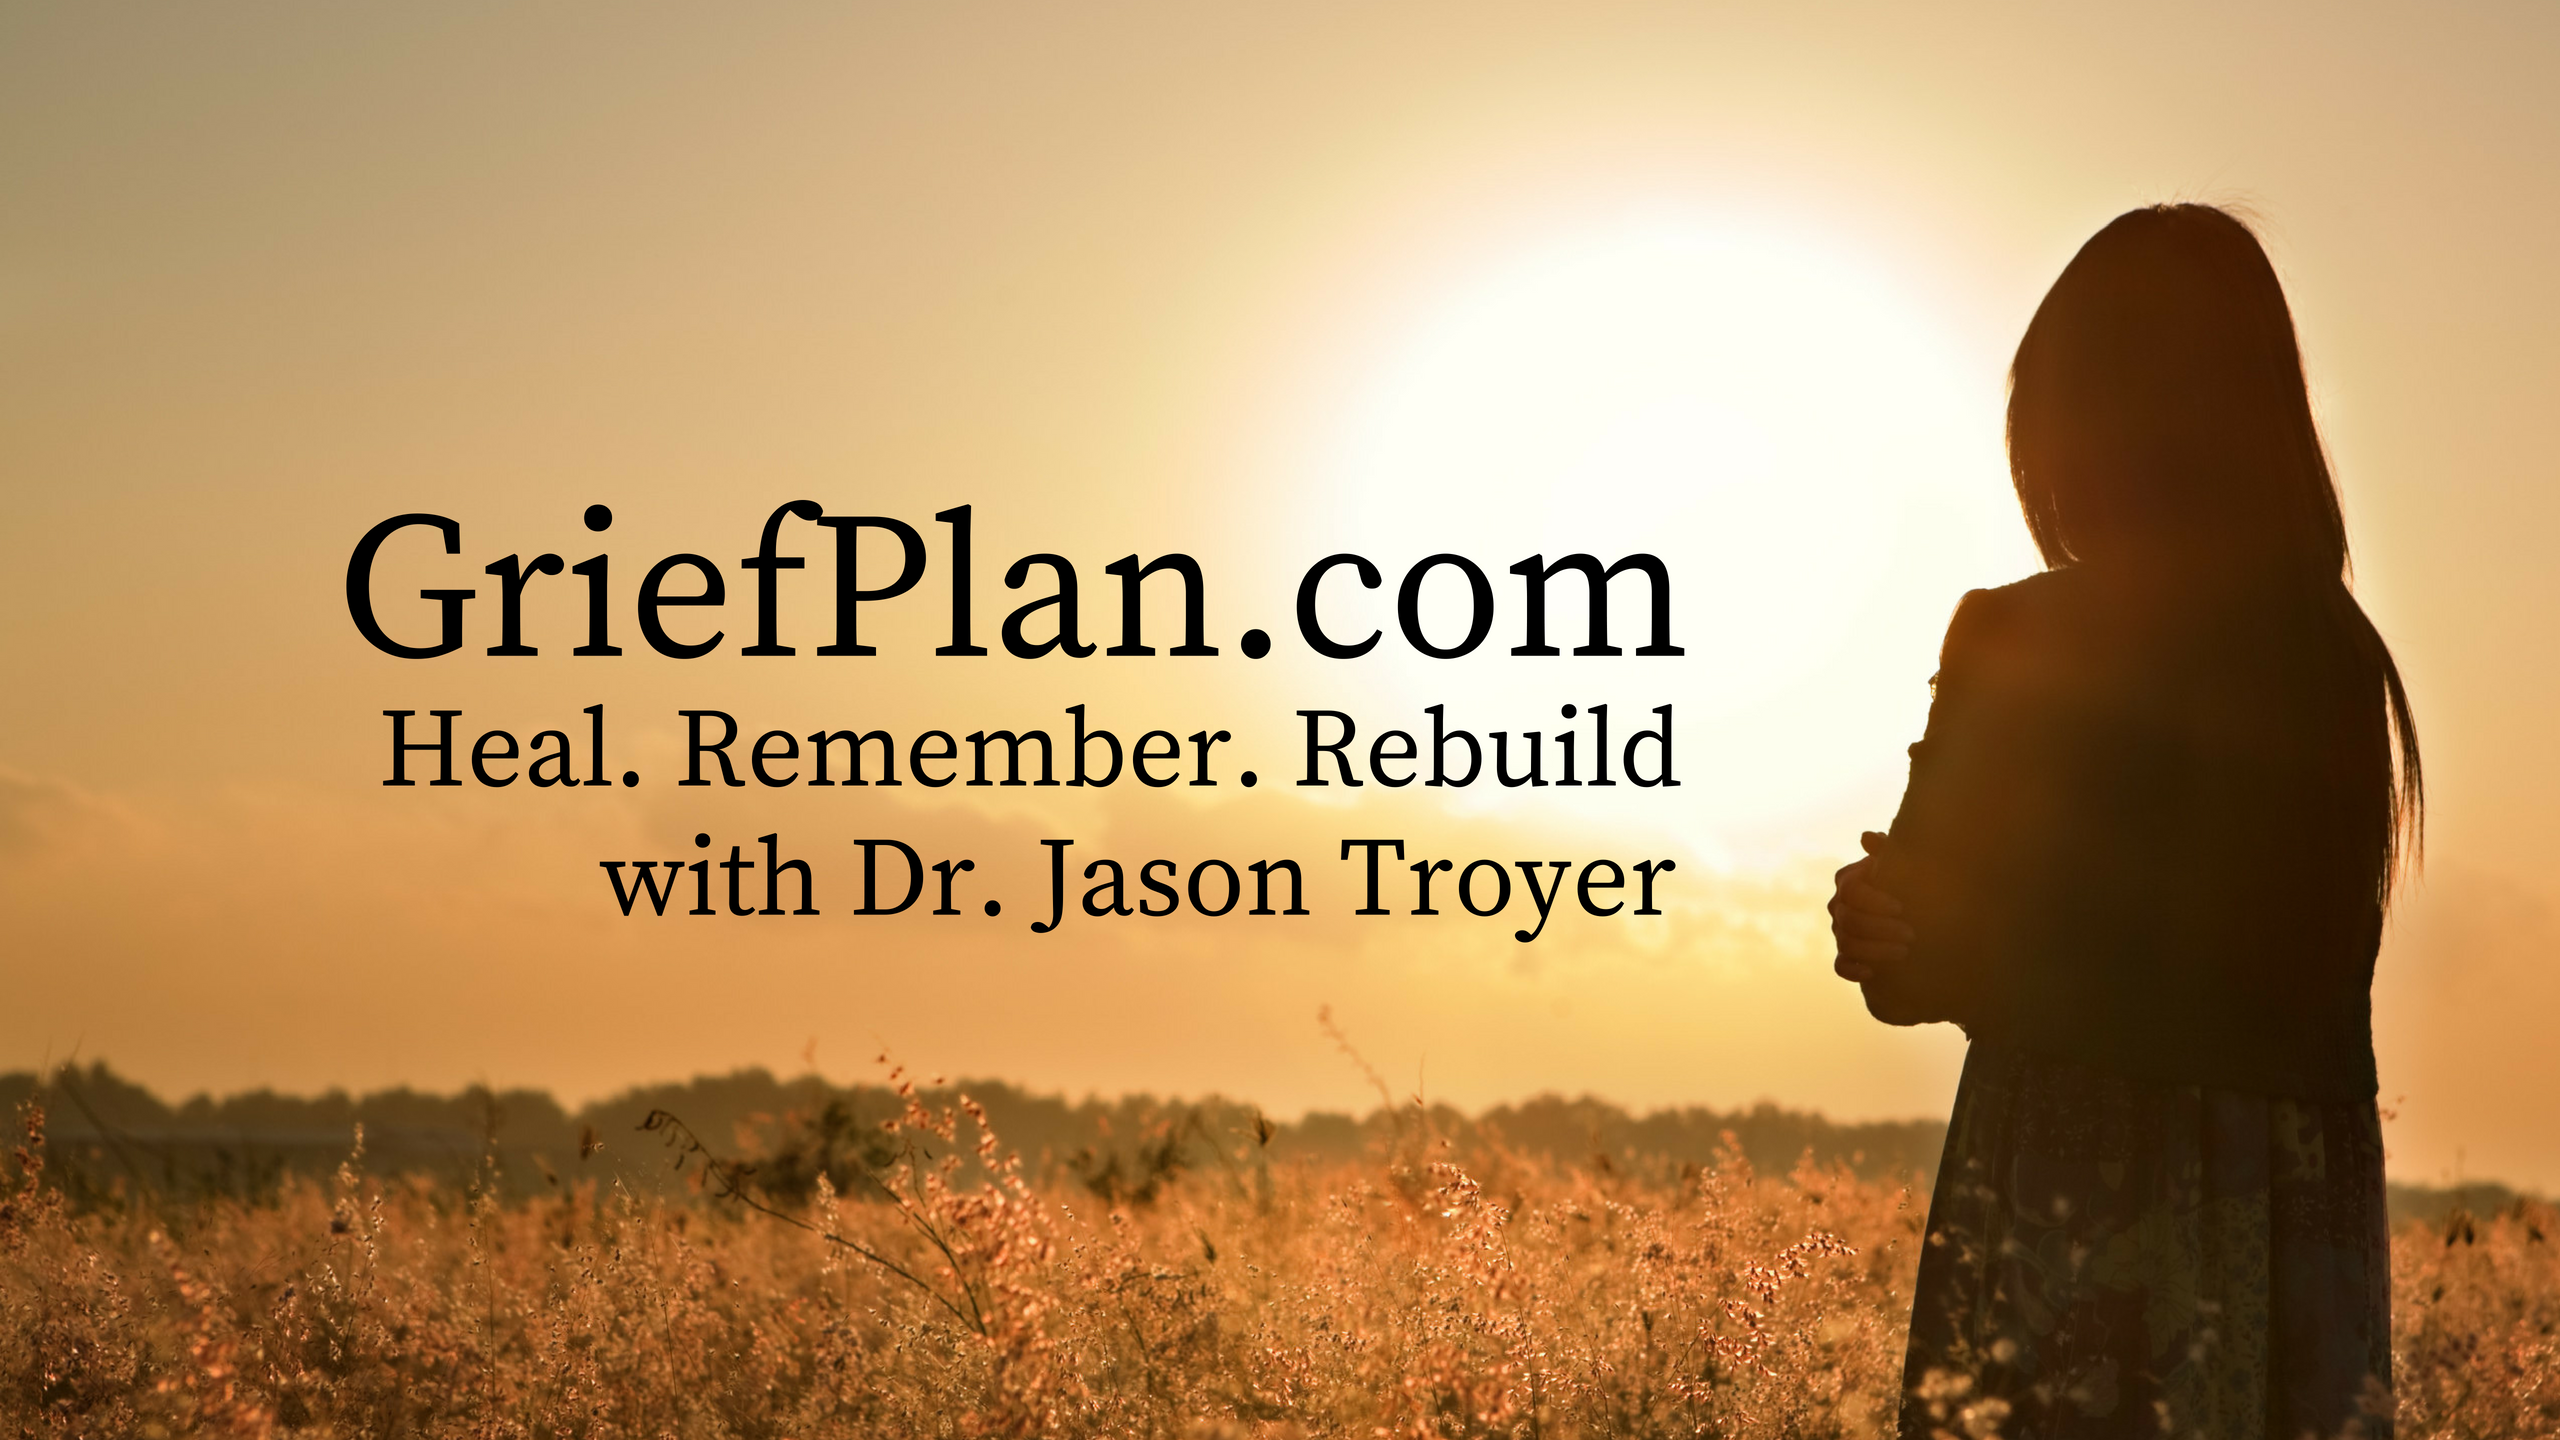 griefplan.com Heal remember rebuild with Dr. Jason Troyer. Text overlayed on a picture of a woman standing in a field of high grass looking at the sunset.